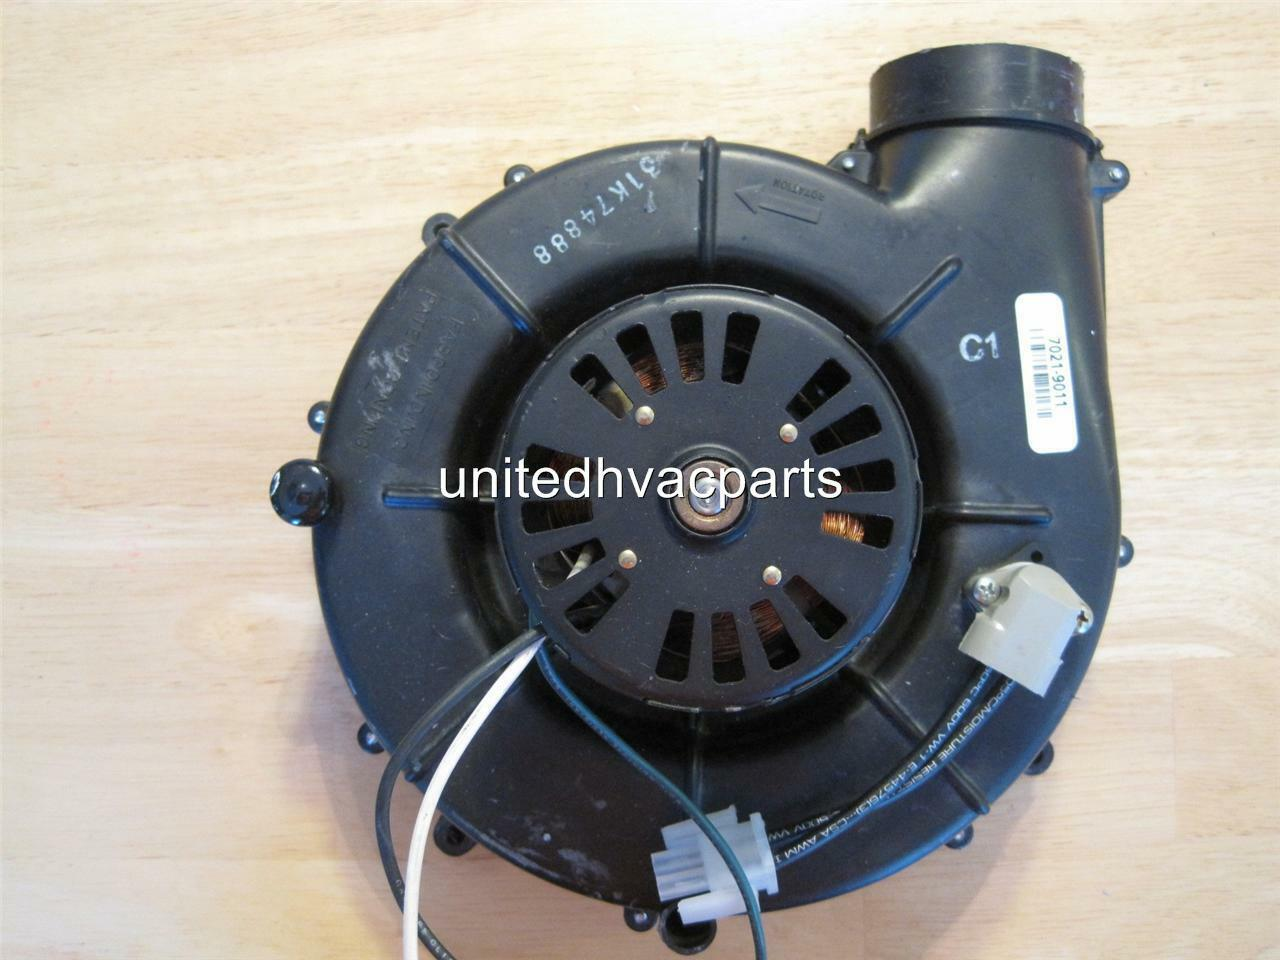 Trane furnace fasco draft inducer motor assembly d330757p01 7021 picture 1 of 1 sciox Gallery